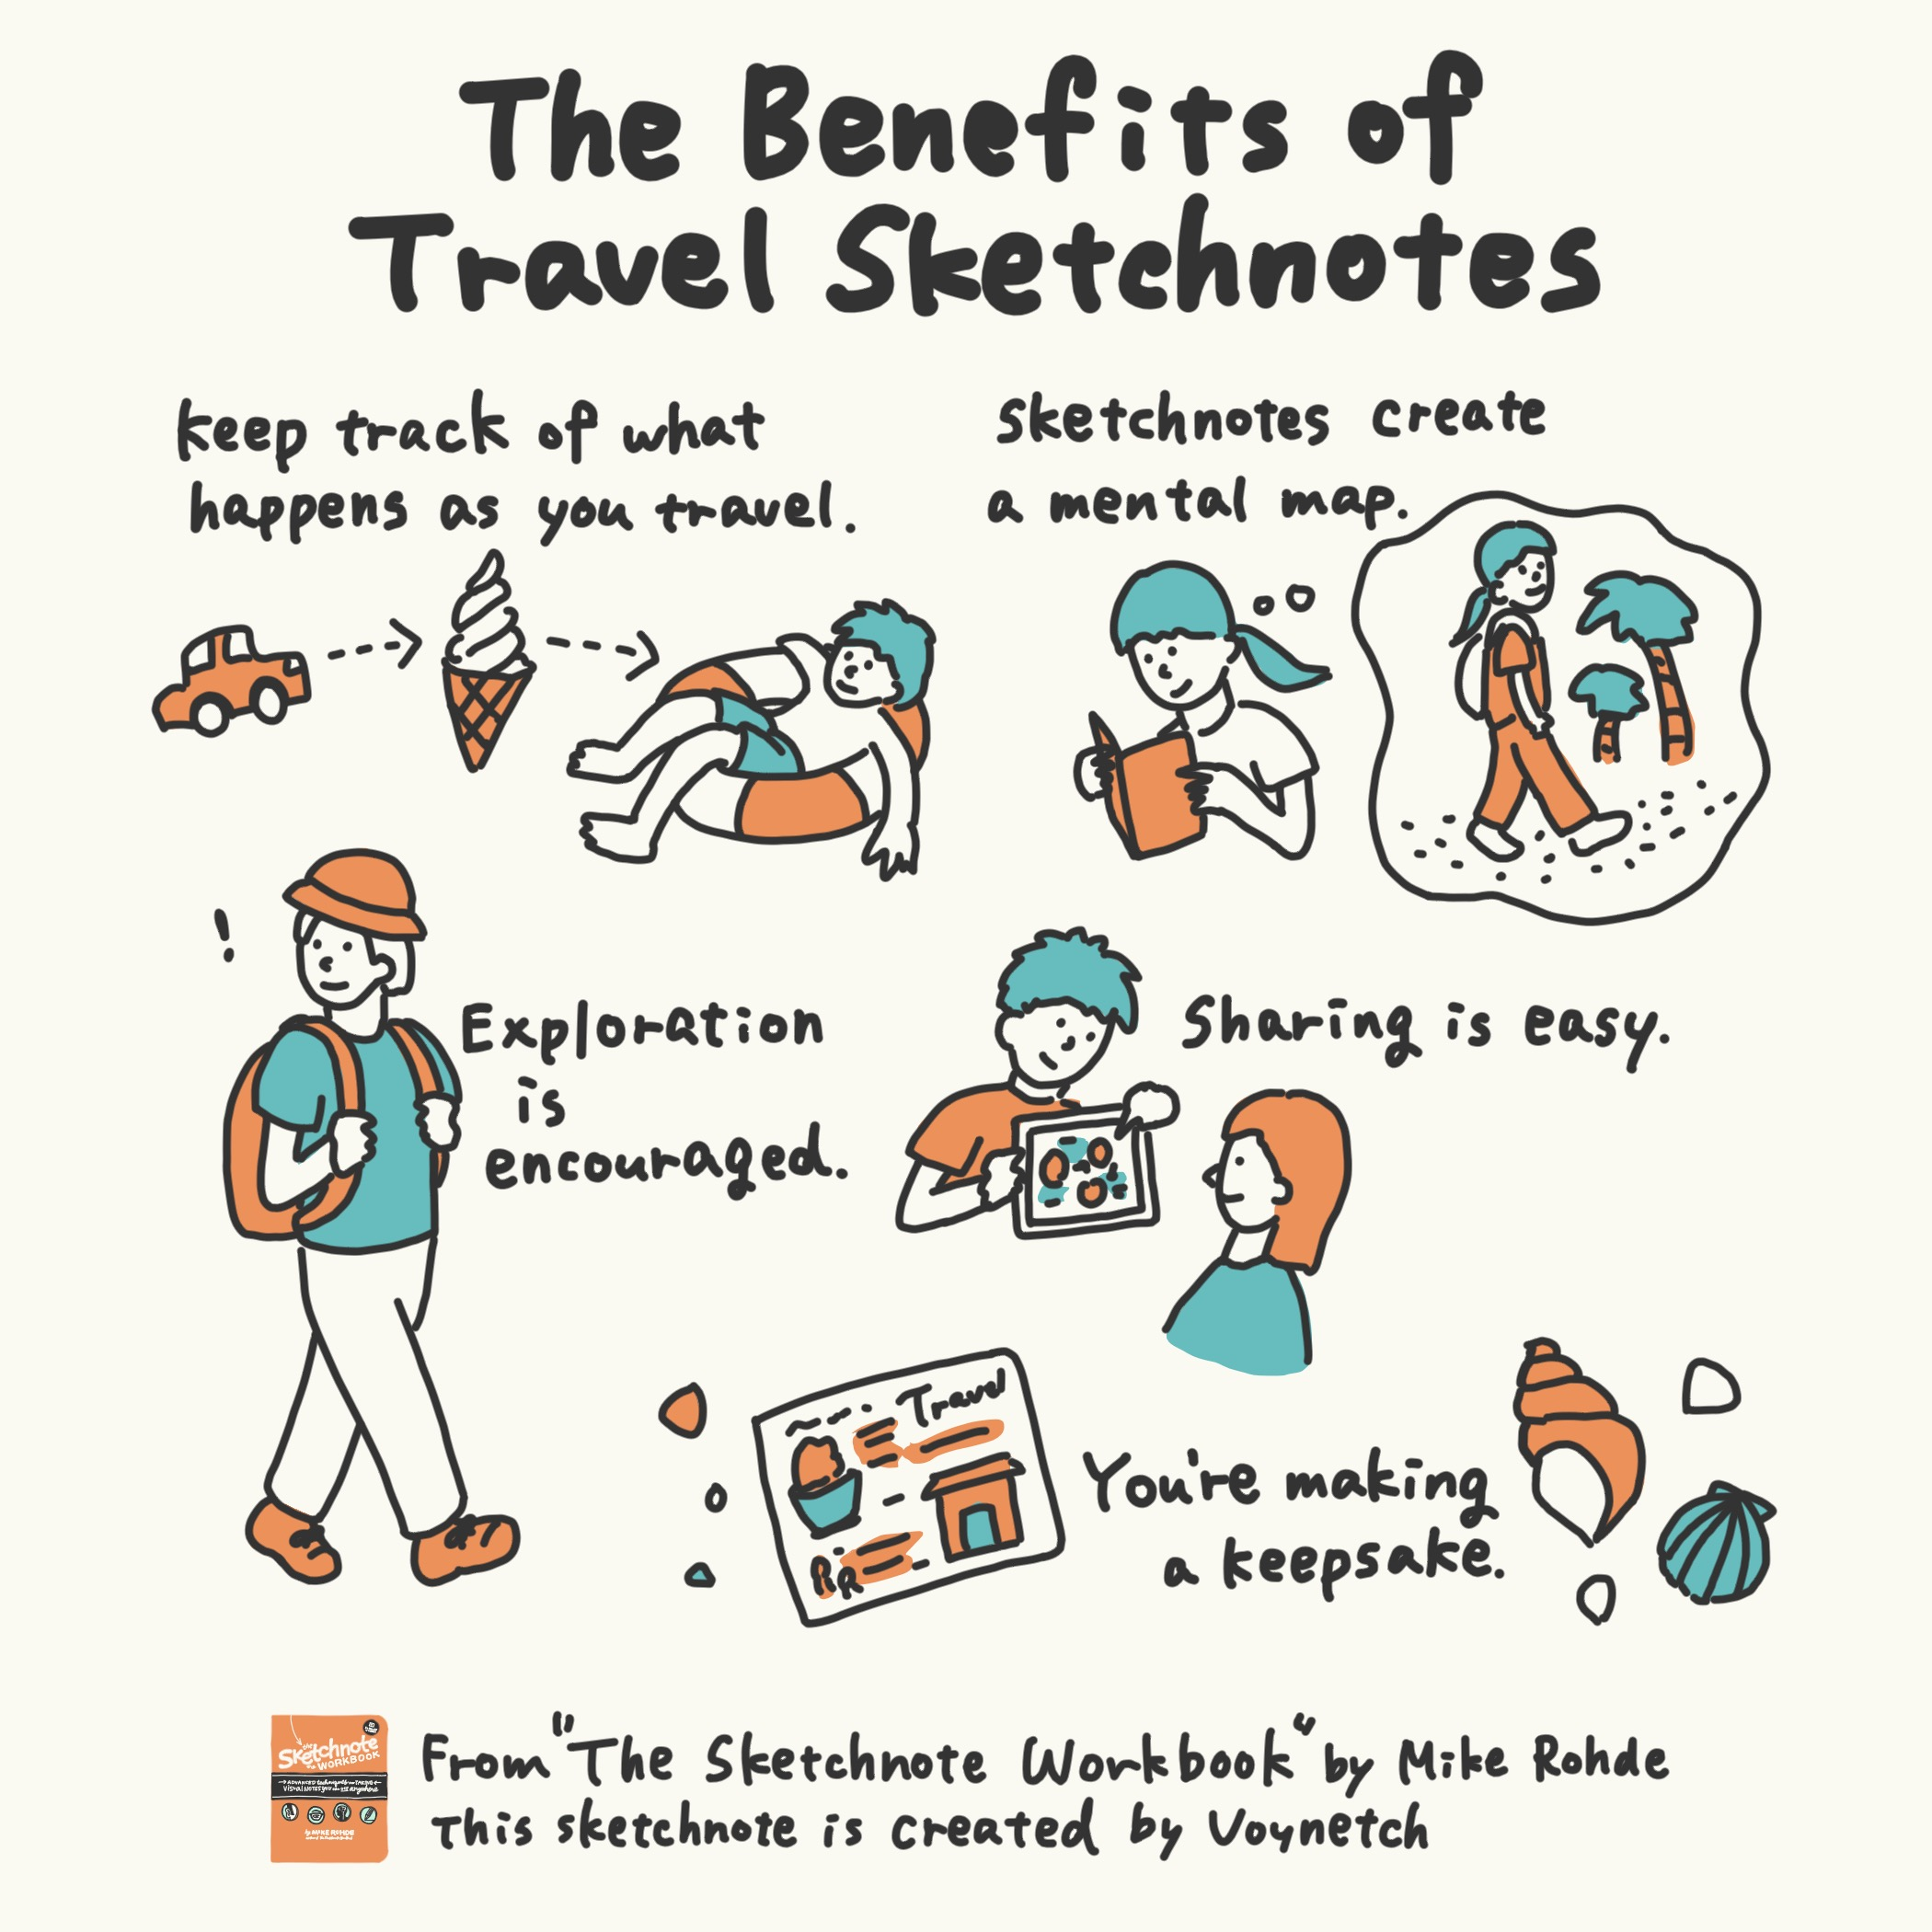 The benefits of travel sketchnotes Image